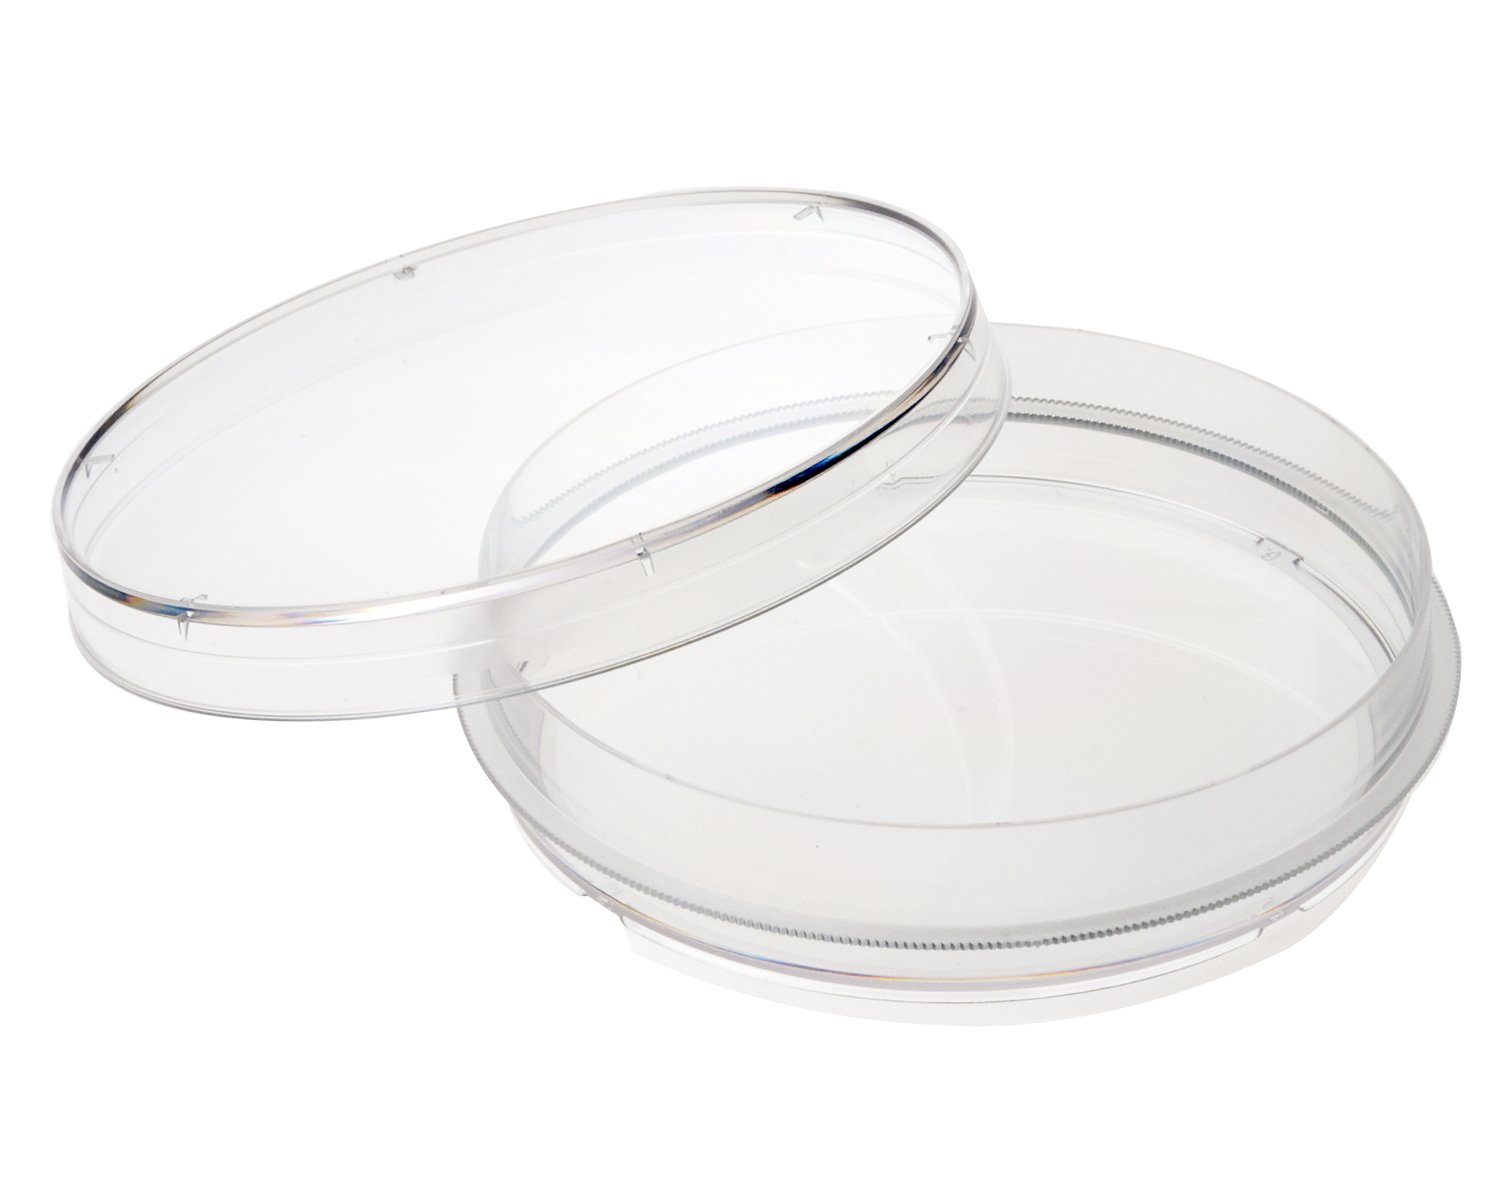 Celltreat 229620 Tissue Culture Treated Dish with Grip Ring, Sterile, 15-16mL Working Volume, 100mm D x 20mm H (Case of 300)